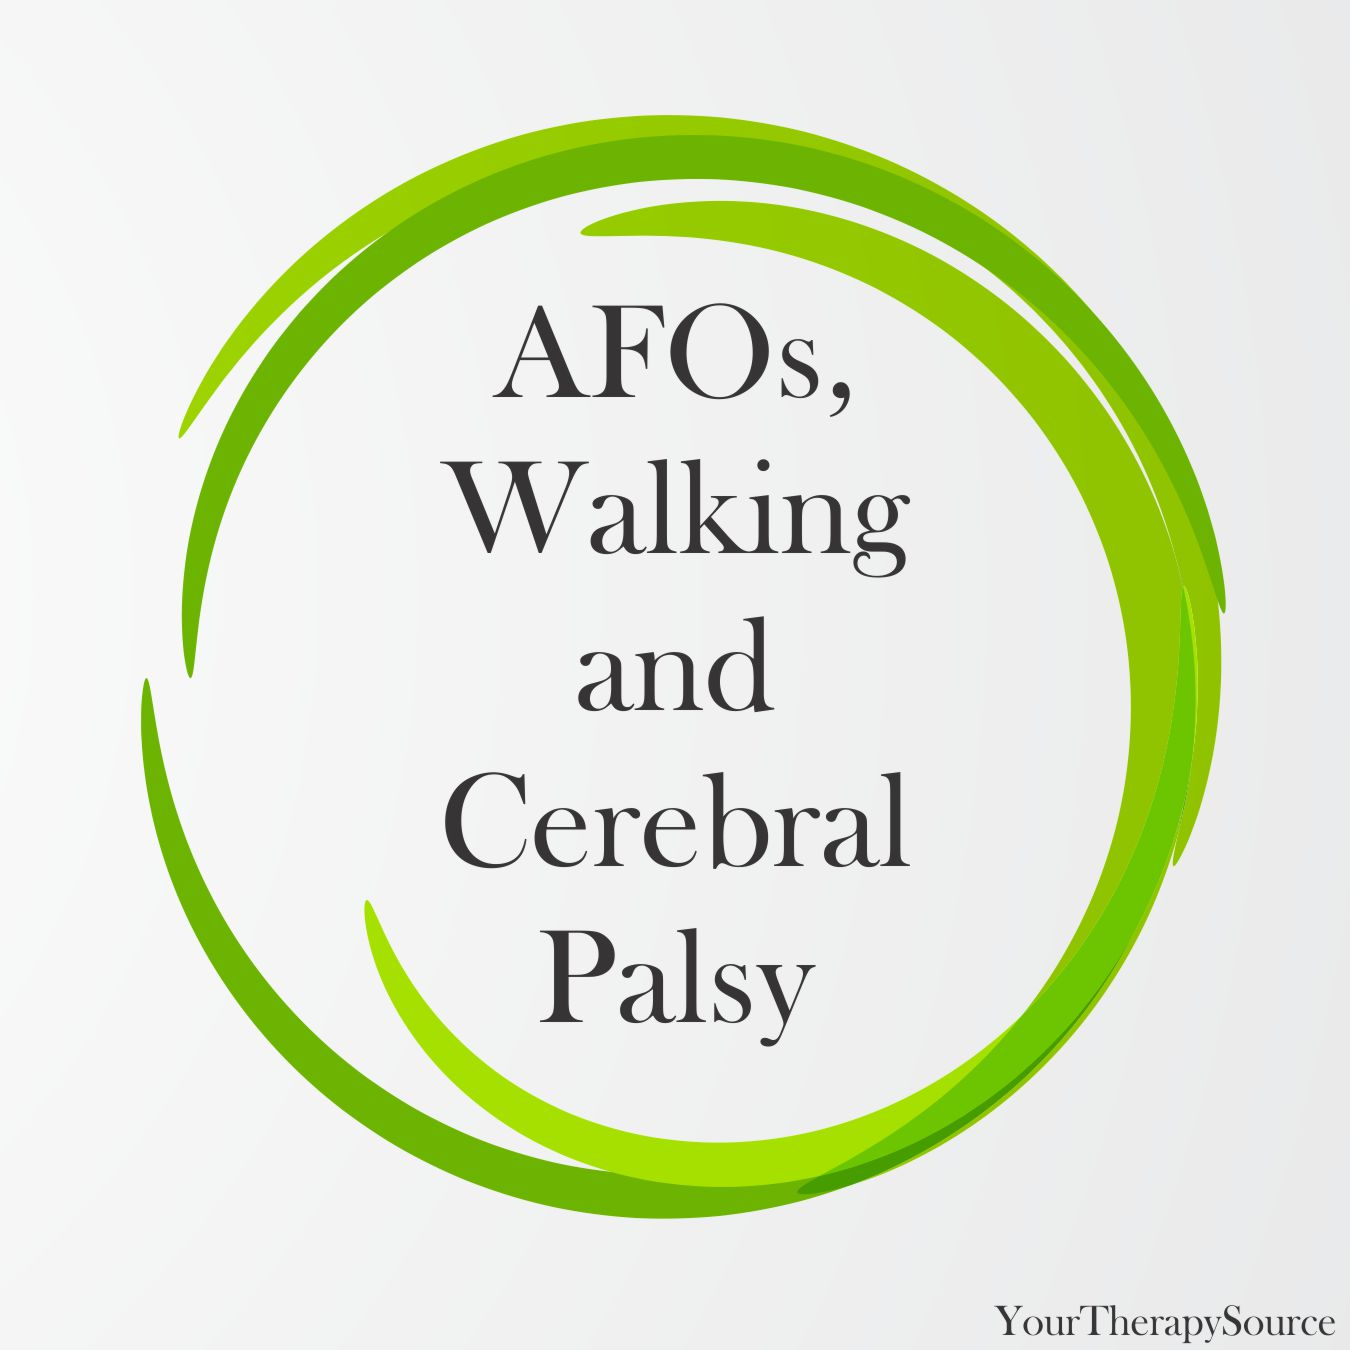 AFOs Walking and Cerebral Palsy